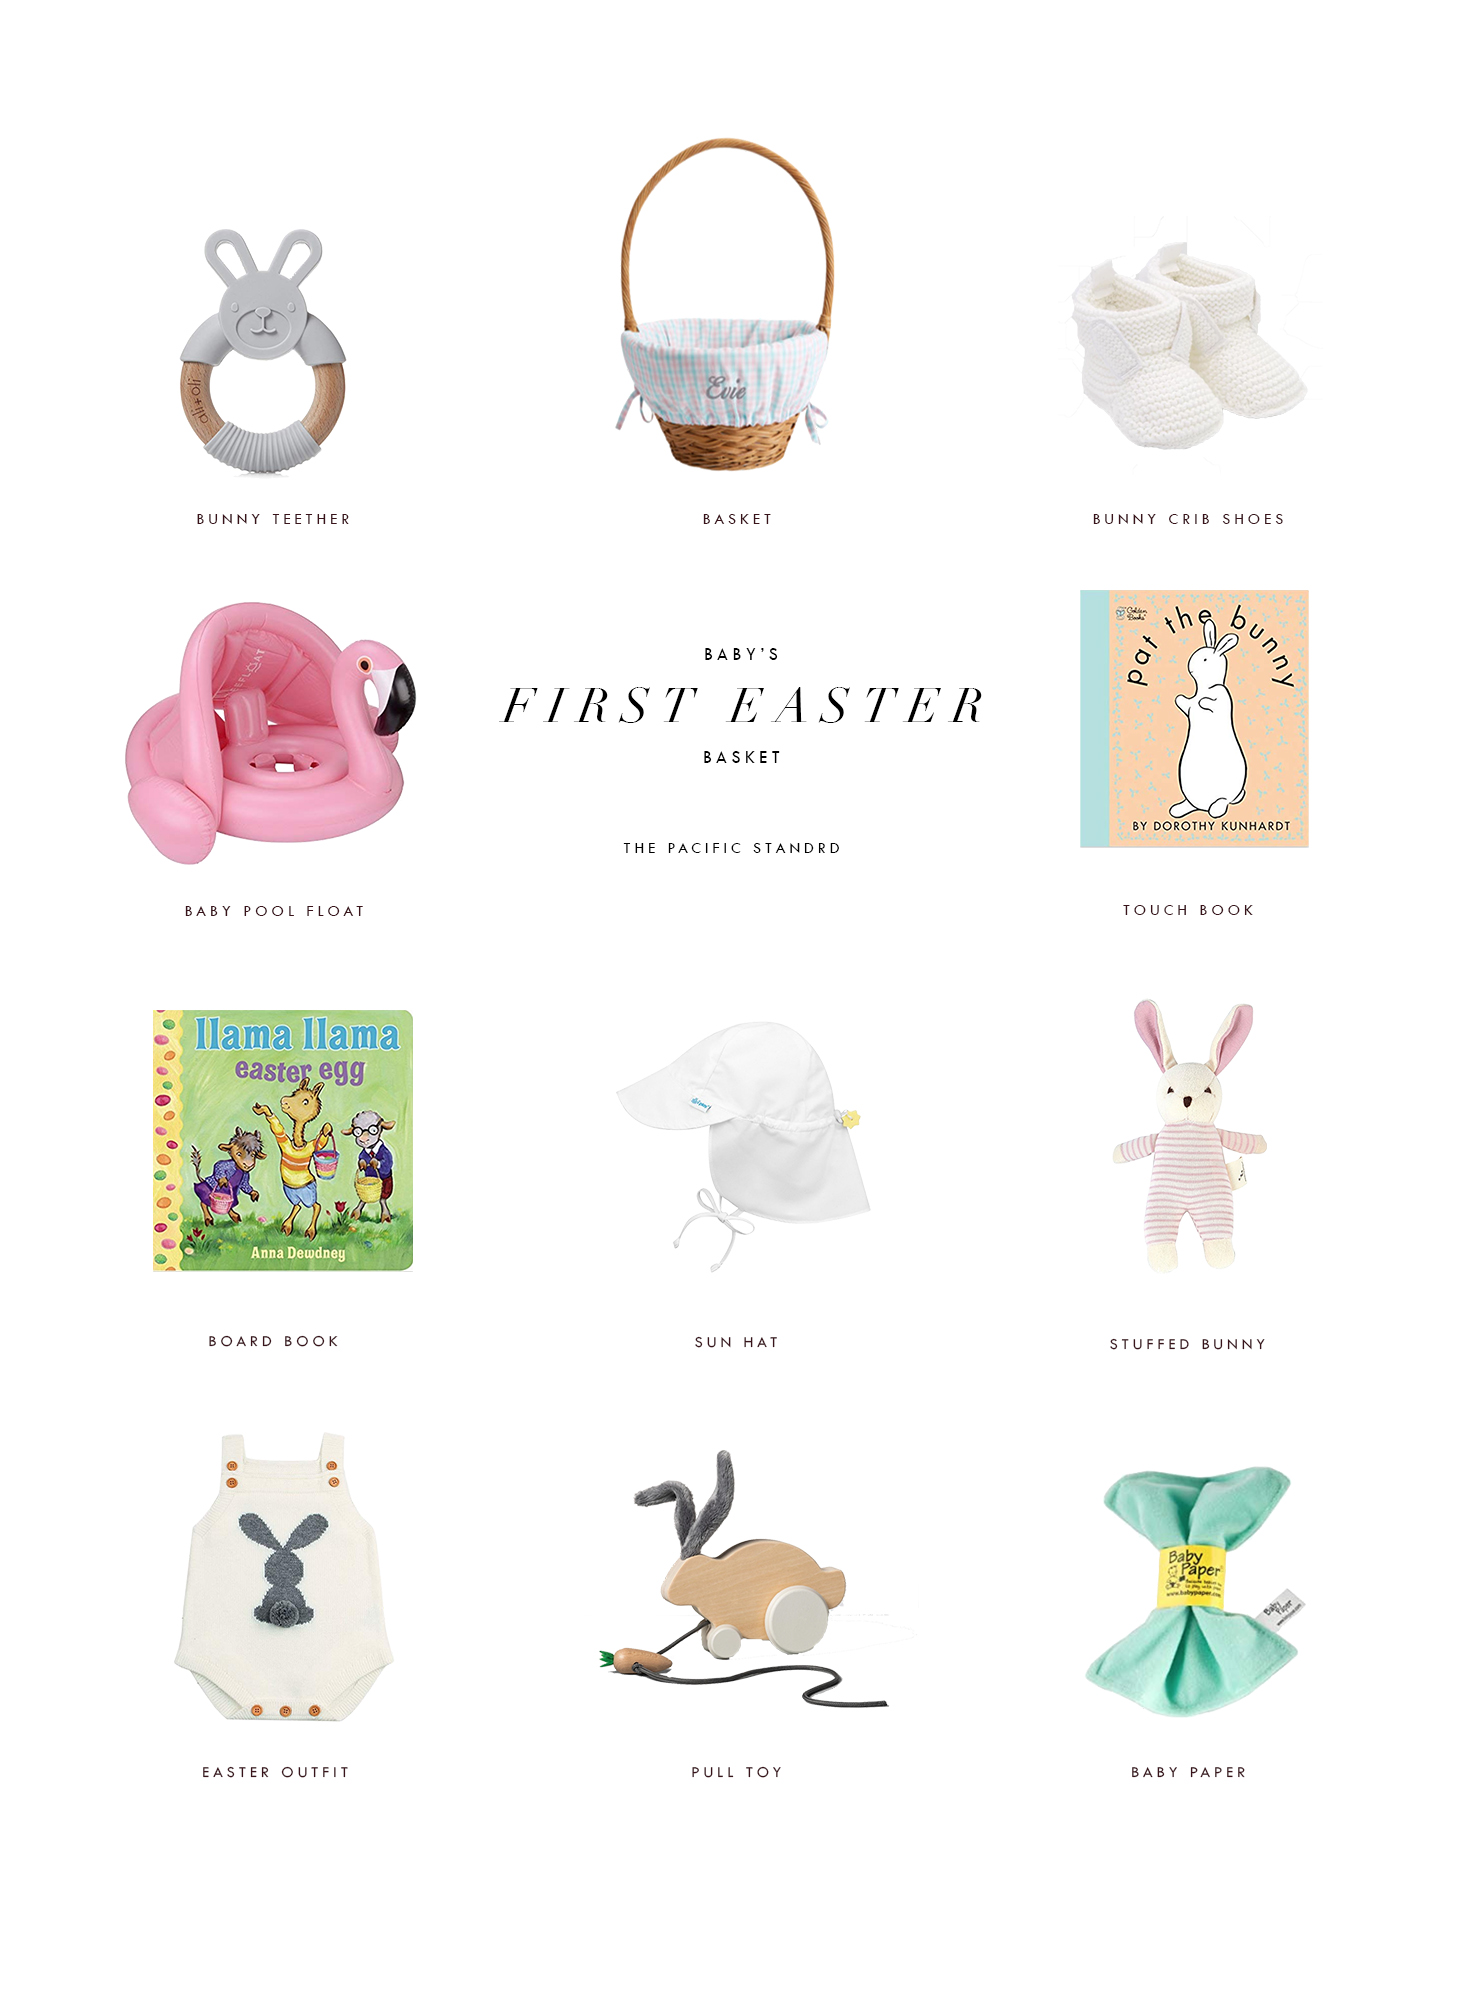 Great Ideas for Baby First Easter Basket via. The Pacific Standard | www.thepacificstandard.com